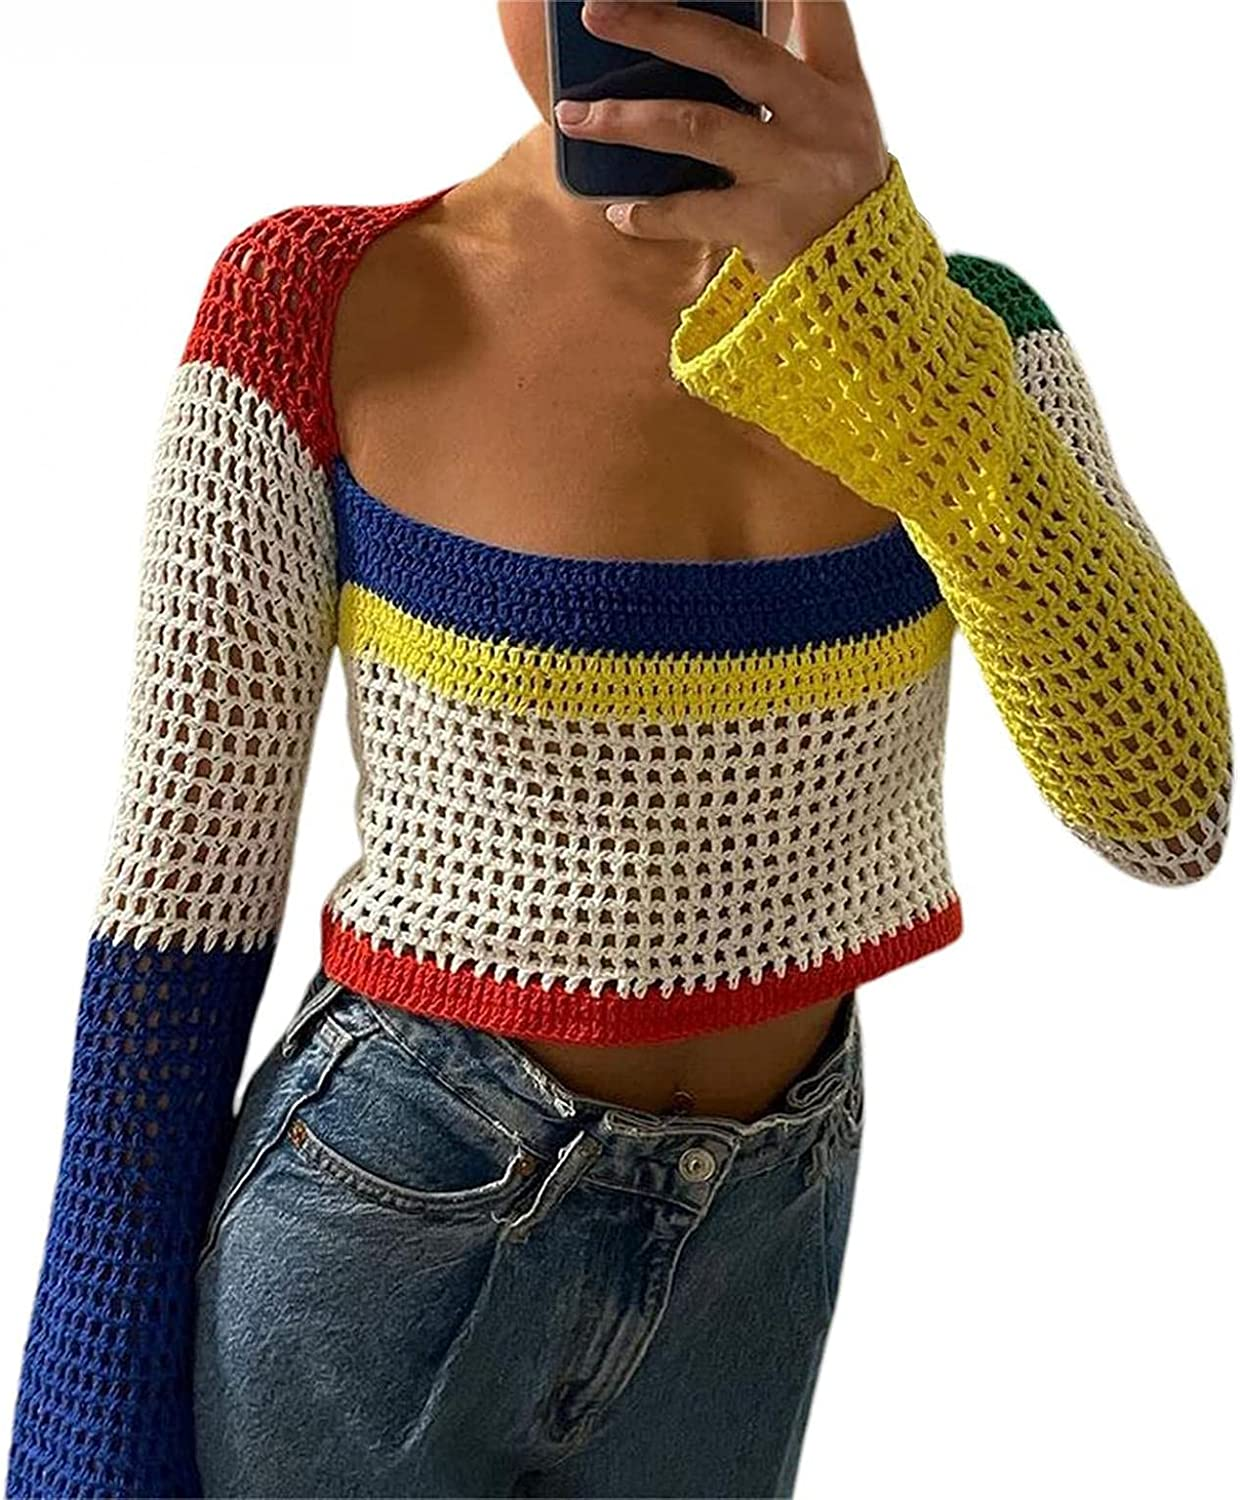 Hemlock Women Hollow Out Knit Crop Tops Square Neck Pullover Sweaters Color Block Short Blouse Fall Tunic Tops